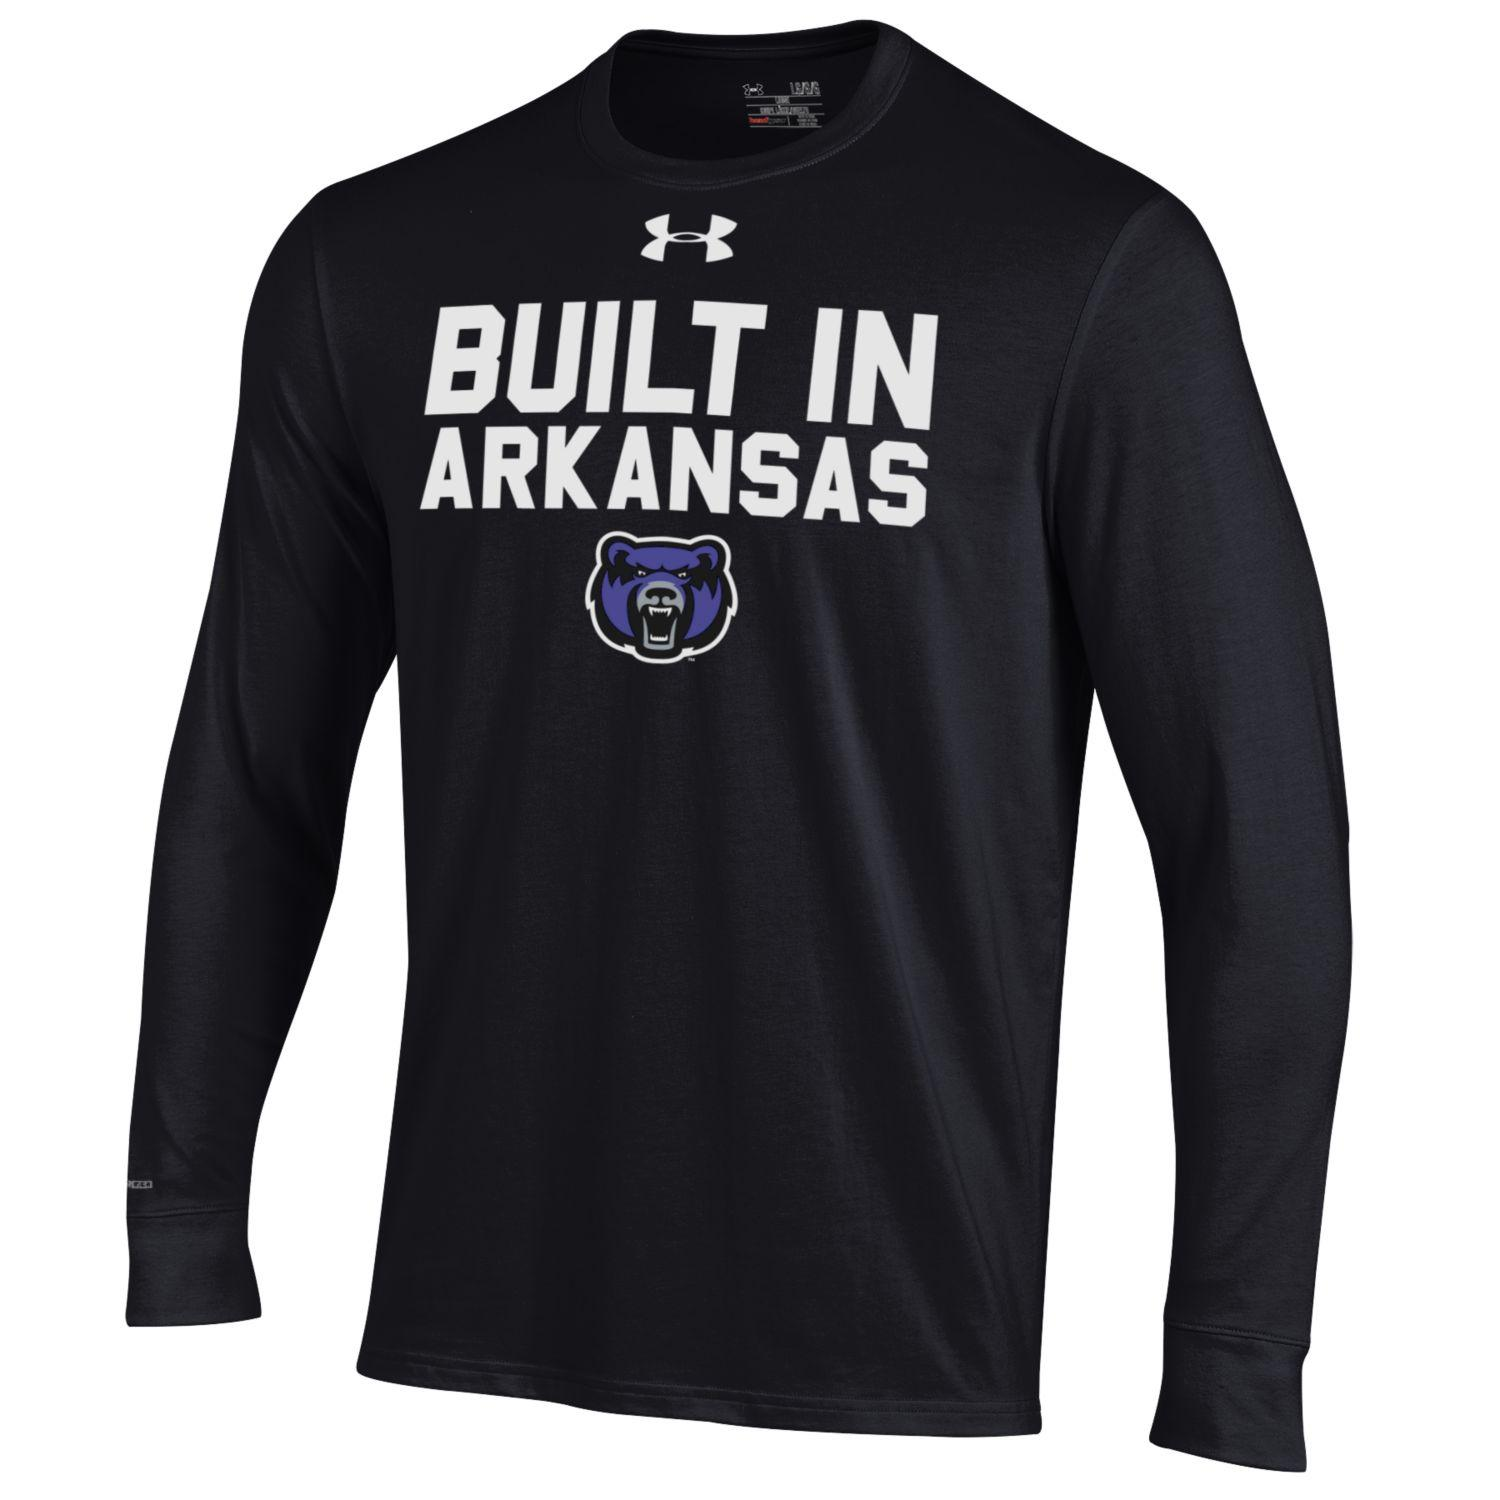 Built In Arkansas LS Tee